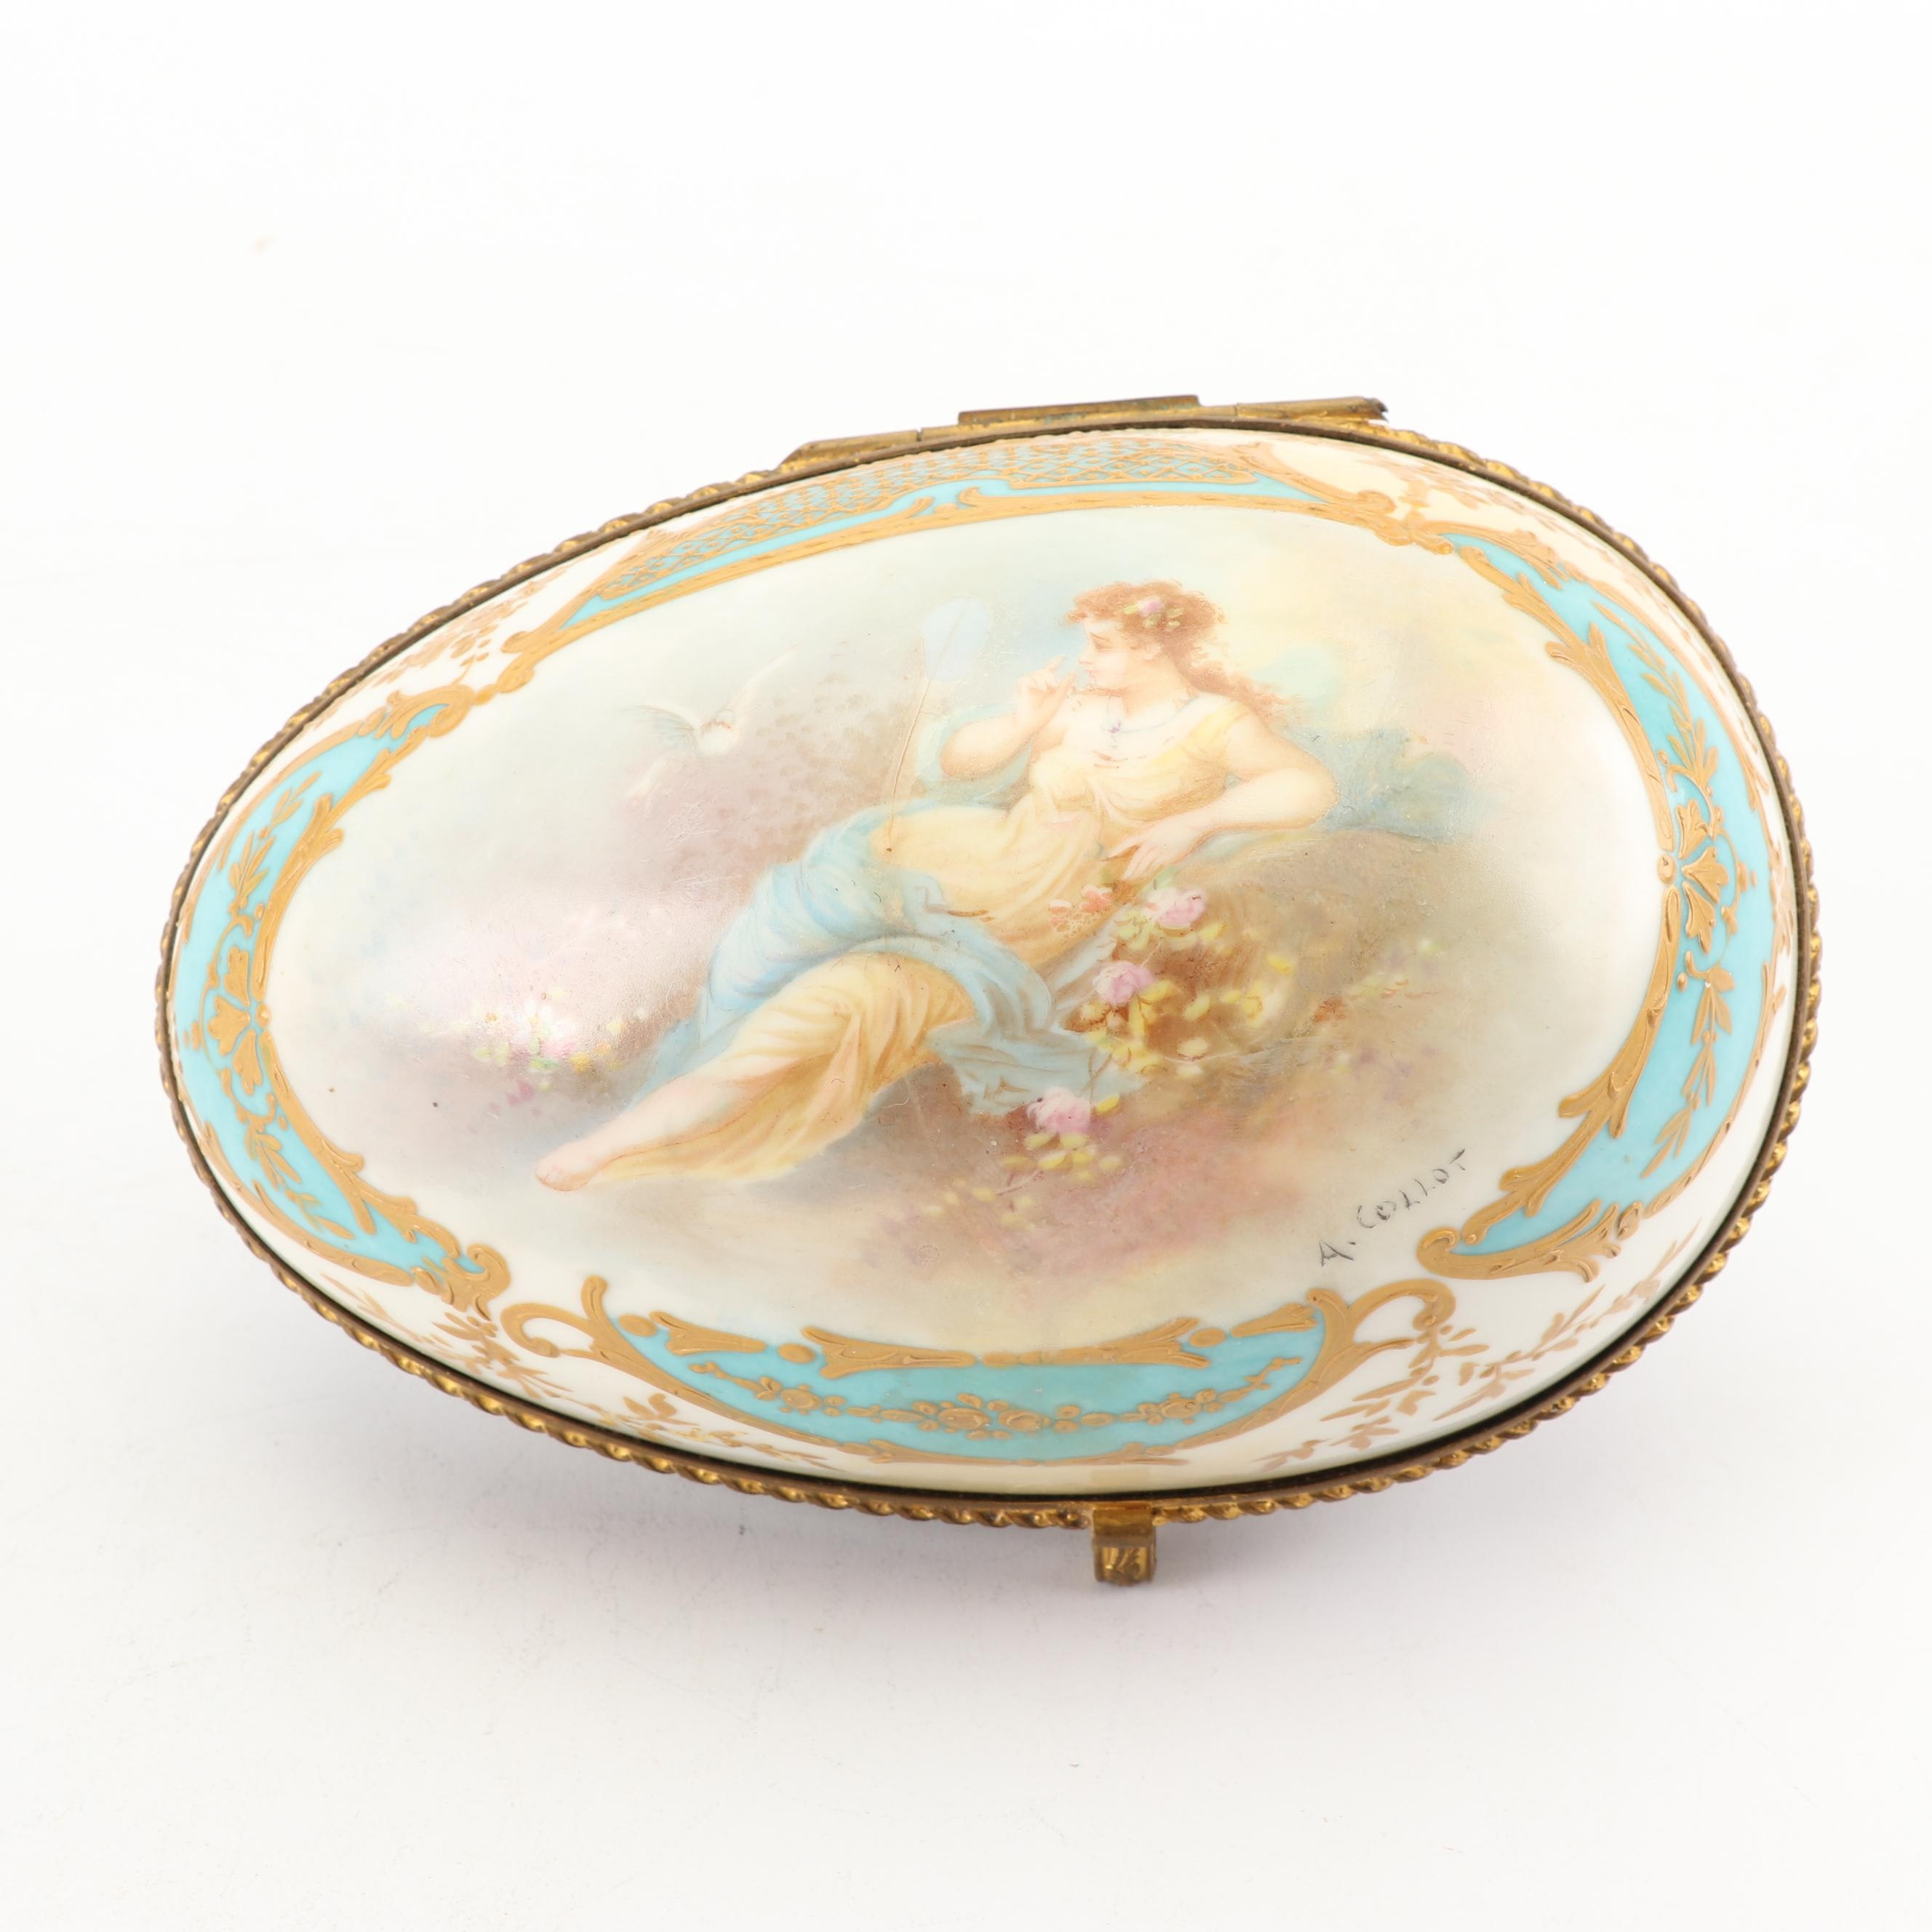 """Chateau Des Tuileries Sevres-style Porcelain Egg-Shaped Box, Signed """"A. Collot"""""""